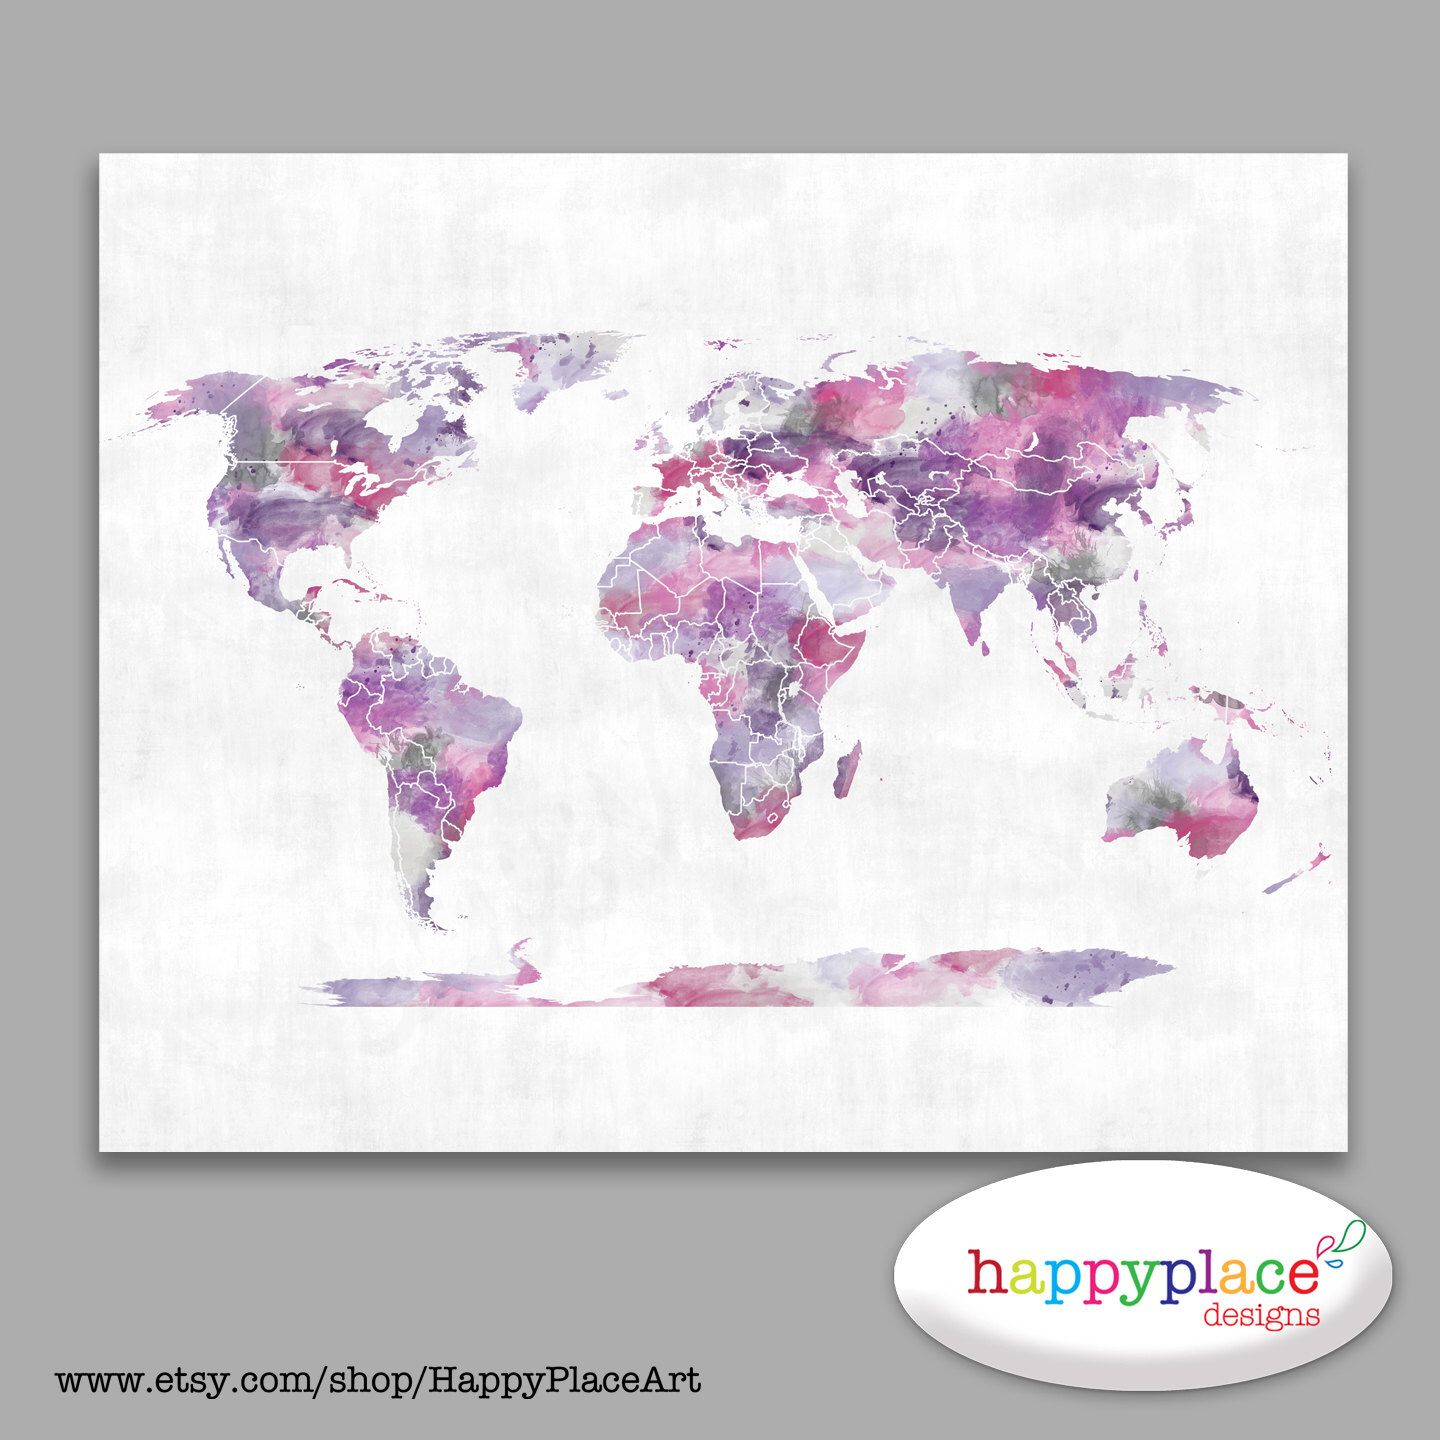 Choice of backgrounds pink and purple watercolour world map poster world map canvas pink and purple watercolor world map poster teen gift dorm wall art push pin travel map world pushpin map pink map gumiabroncs Image collections